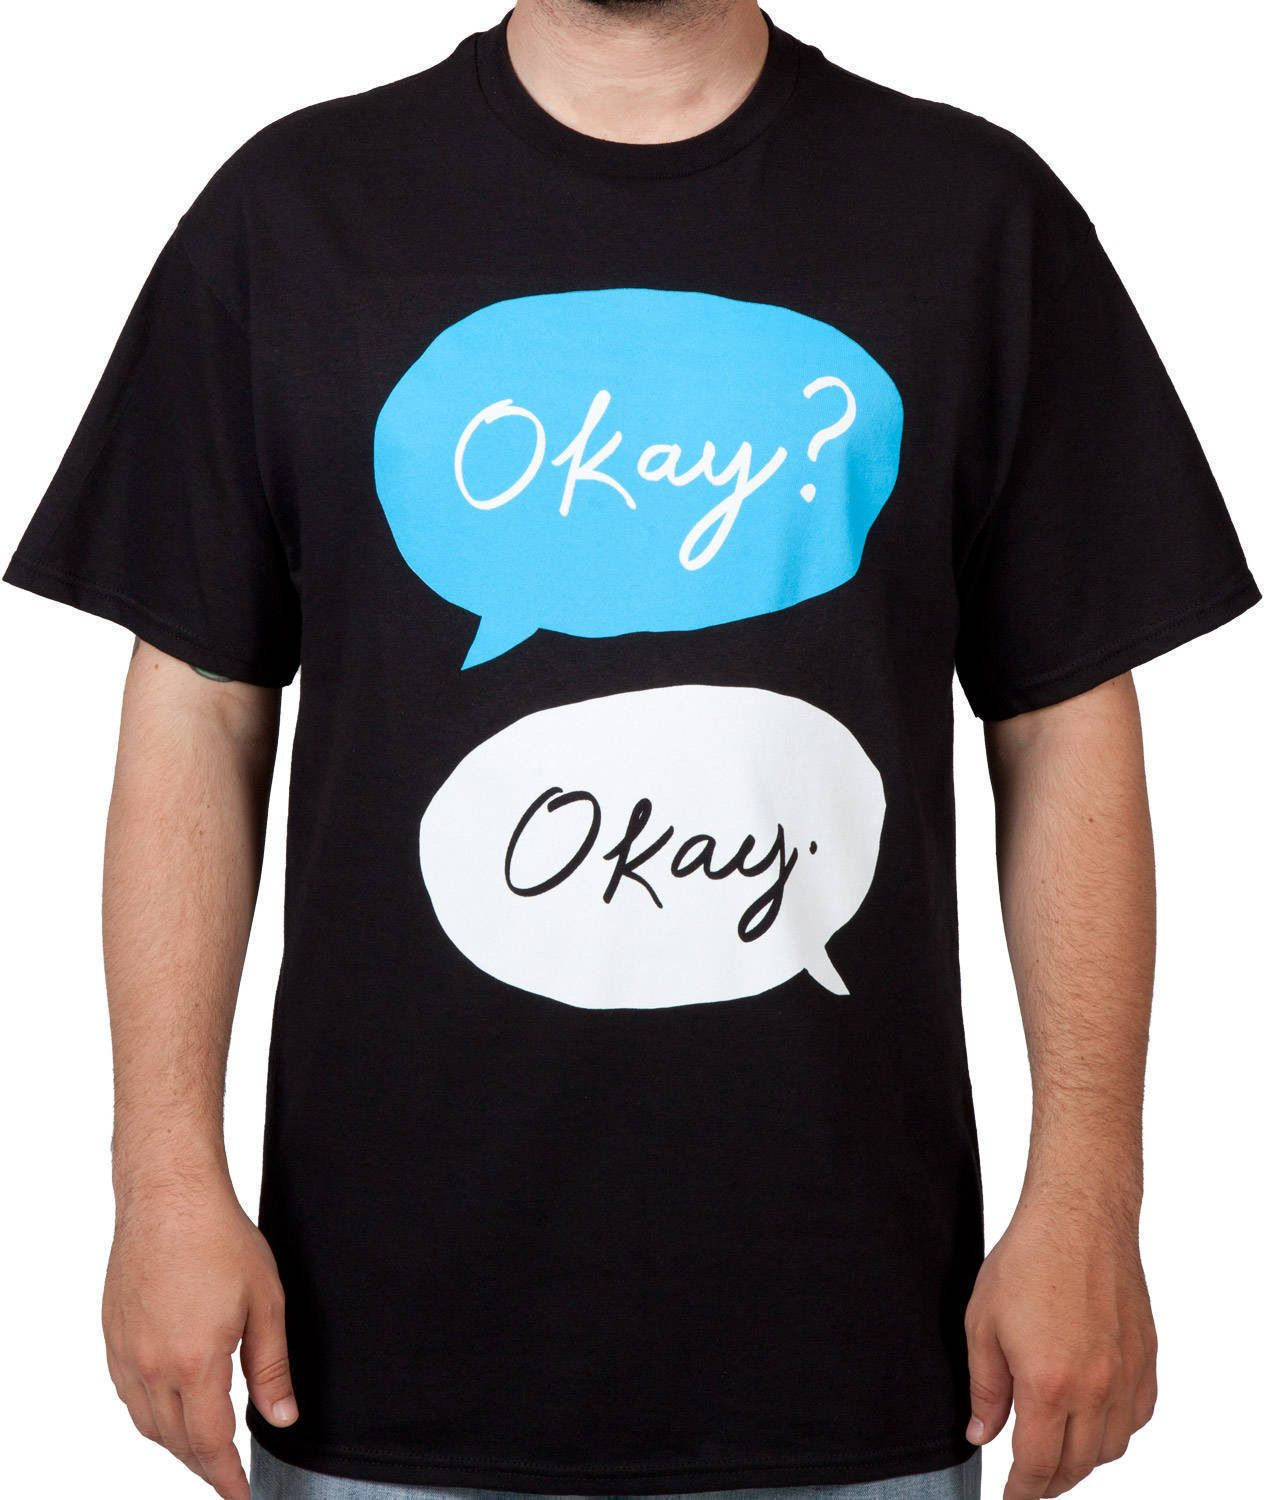 Okay Okay The Fault In Our Stars Shirt